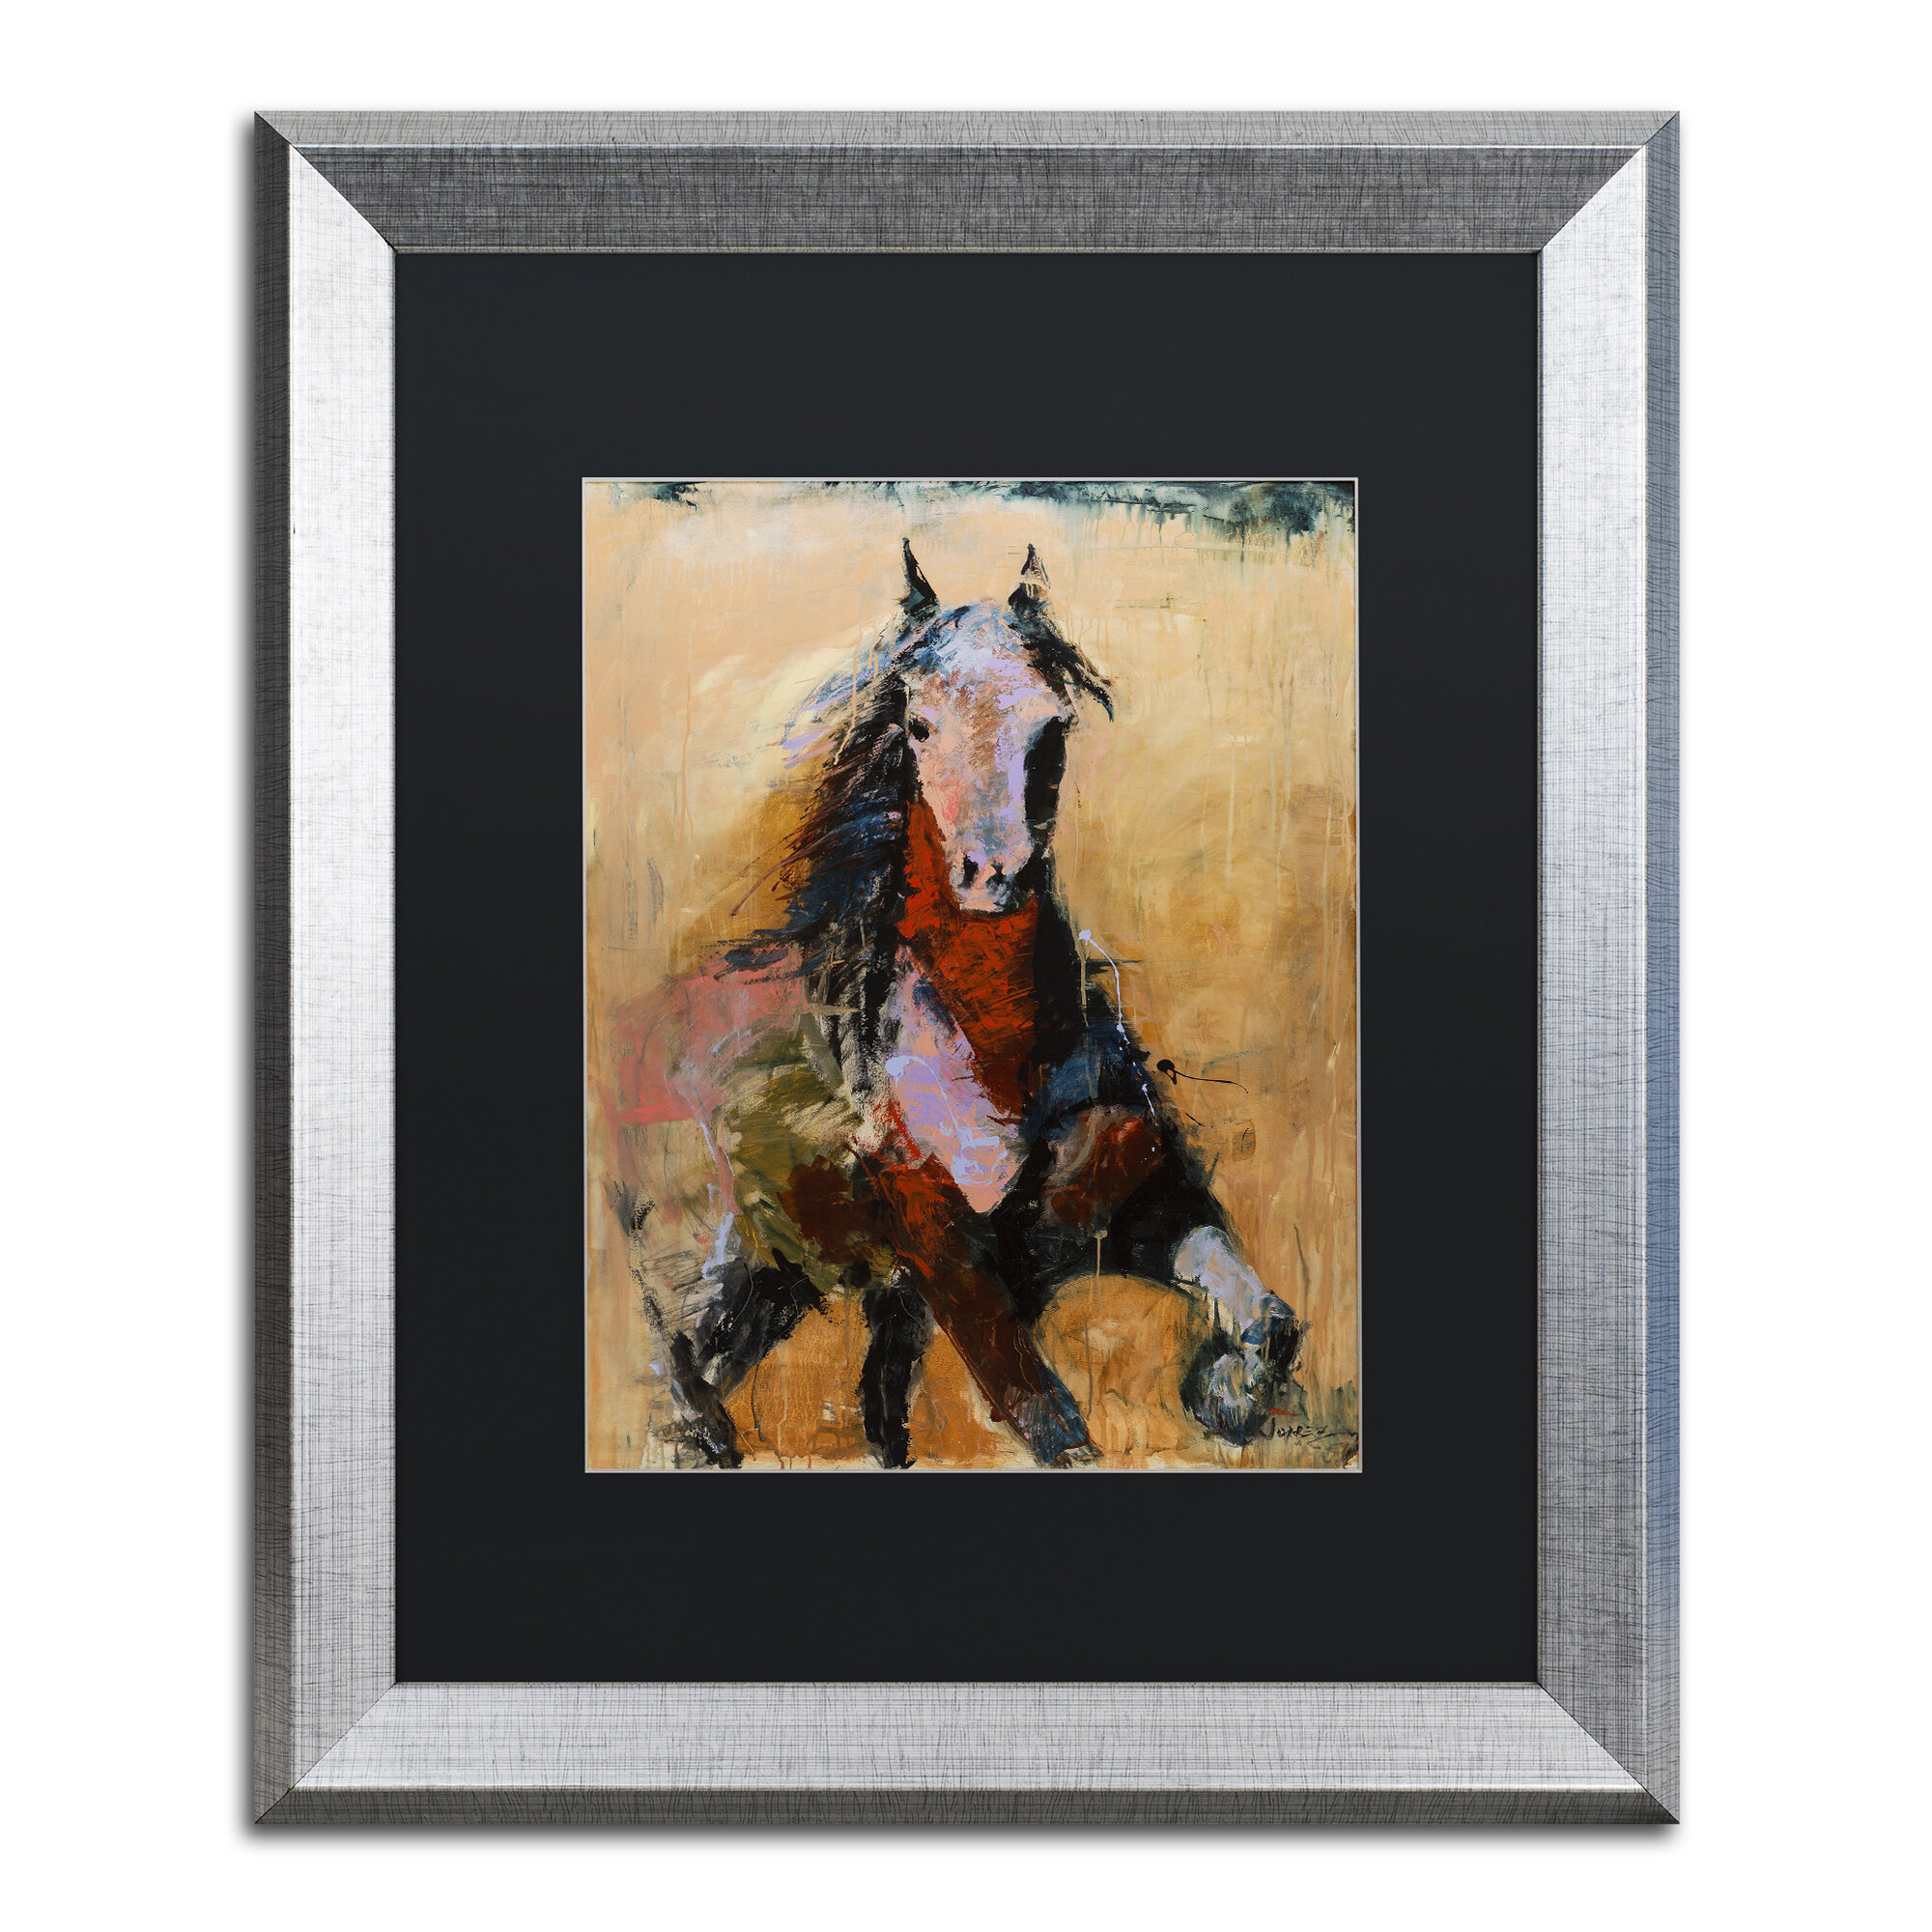 Trademark Art Golden Horse Matted Framed Painting Print On Canvas Wayfair